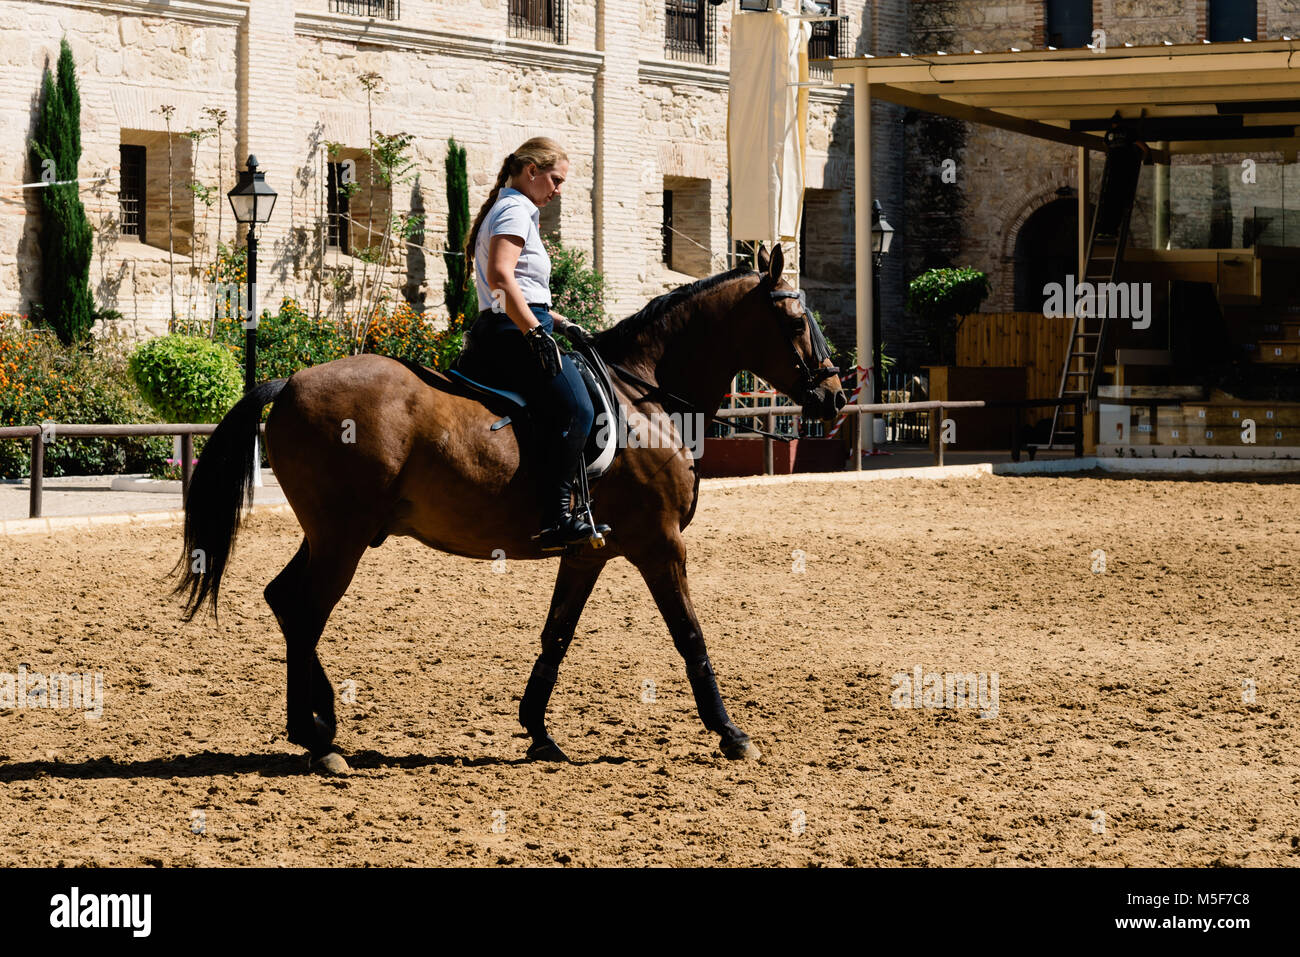 Cordoba, Spain - April 12, 2017: Woman horse rider riding a brown andalusian horse also known as Pure Spanish Horse Stock Photo